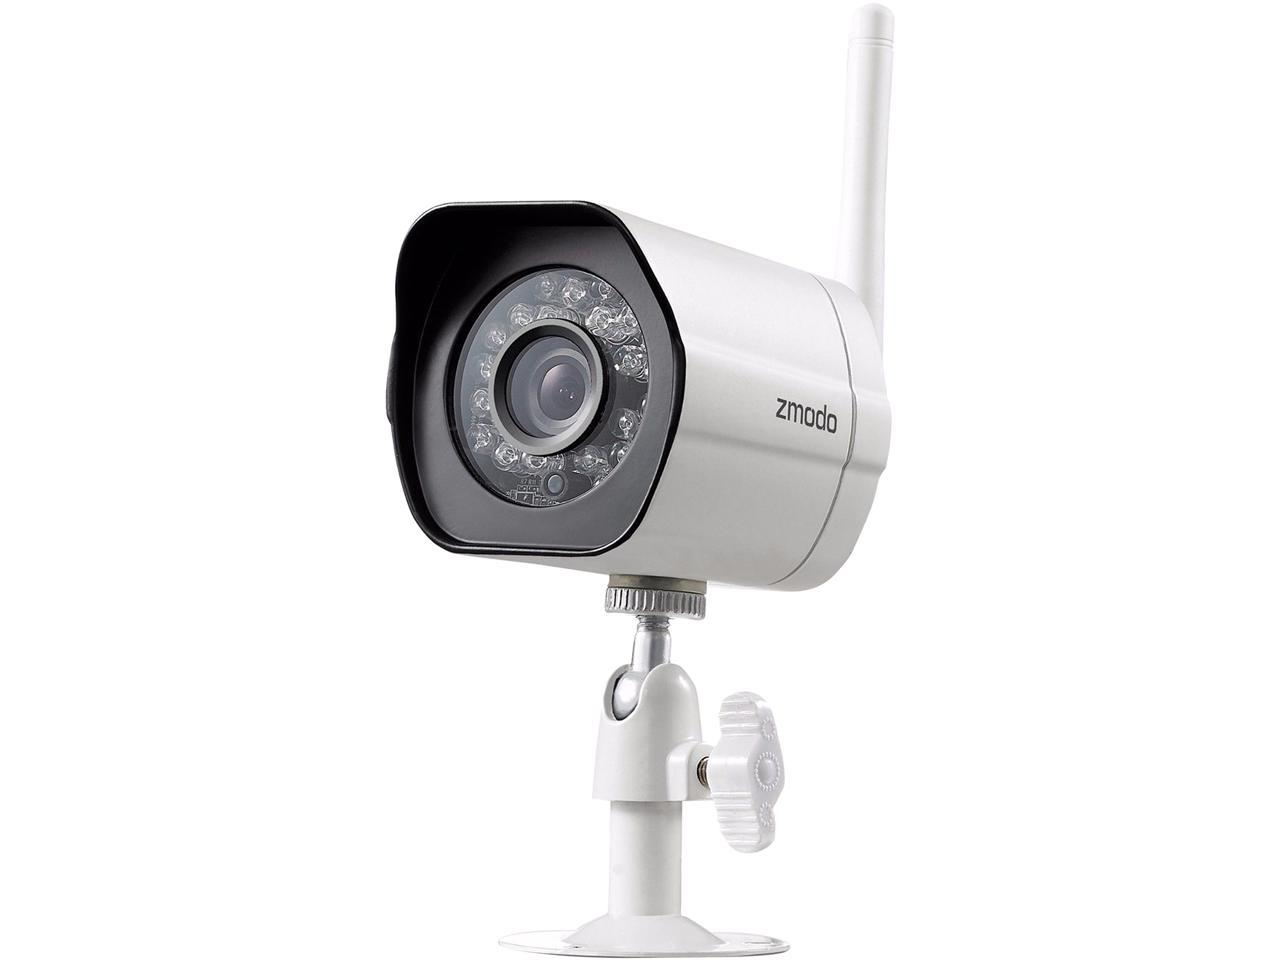 Zmodo 720p Home Security Surveillance Video Camera System